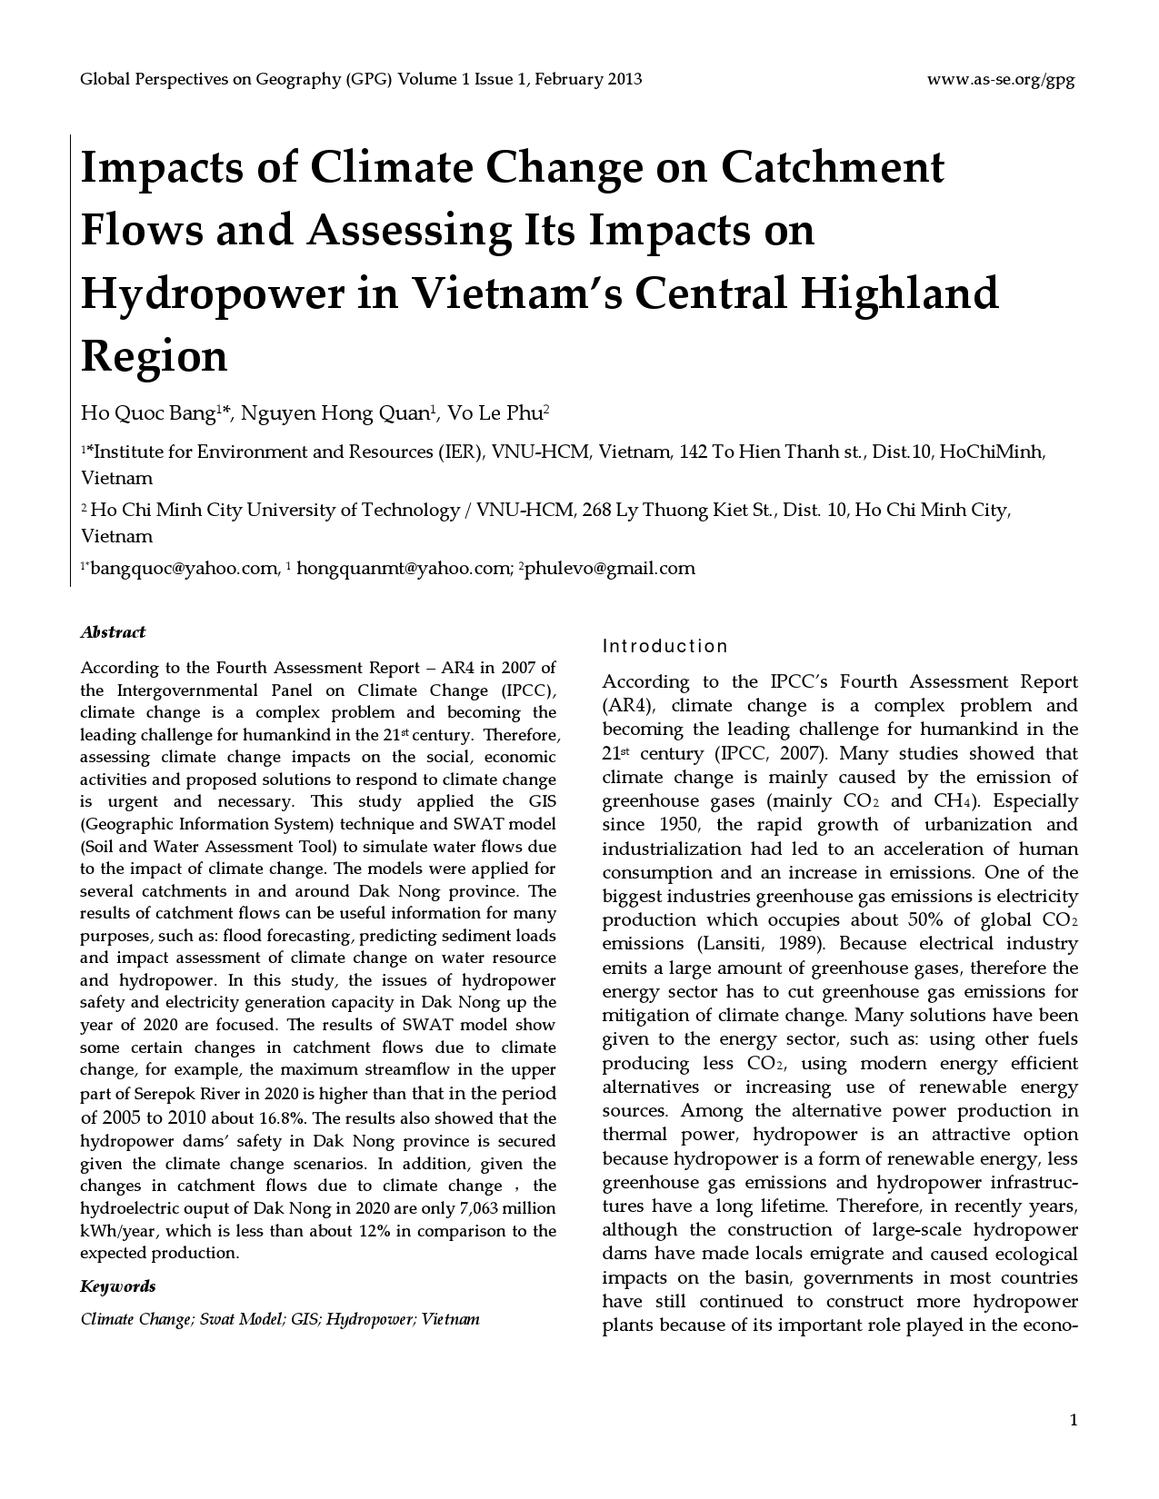 Impacts of Climate Change on Catchment Flows and Assessing